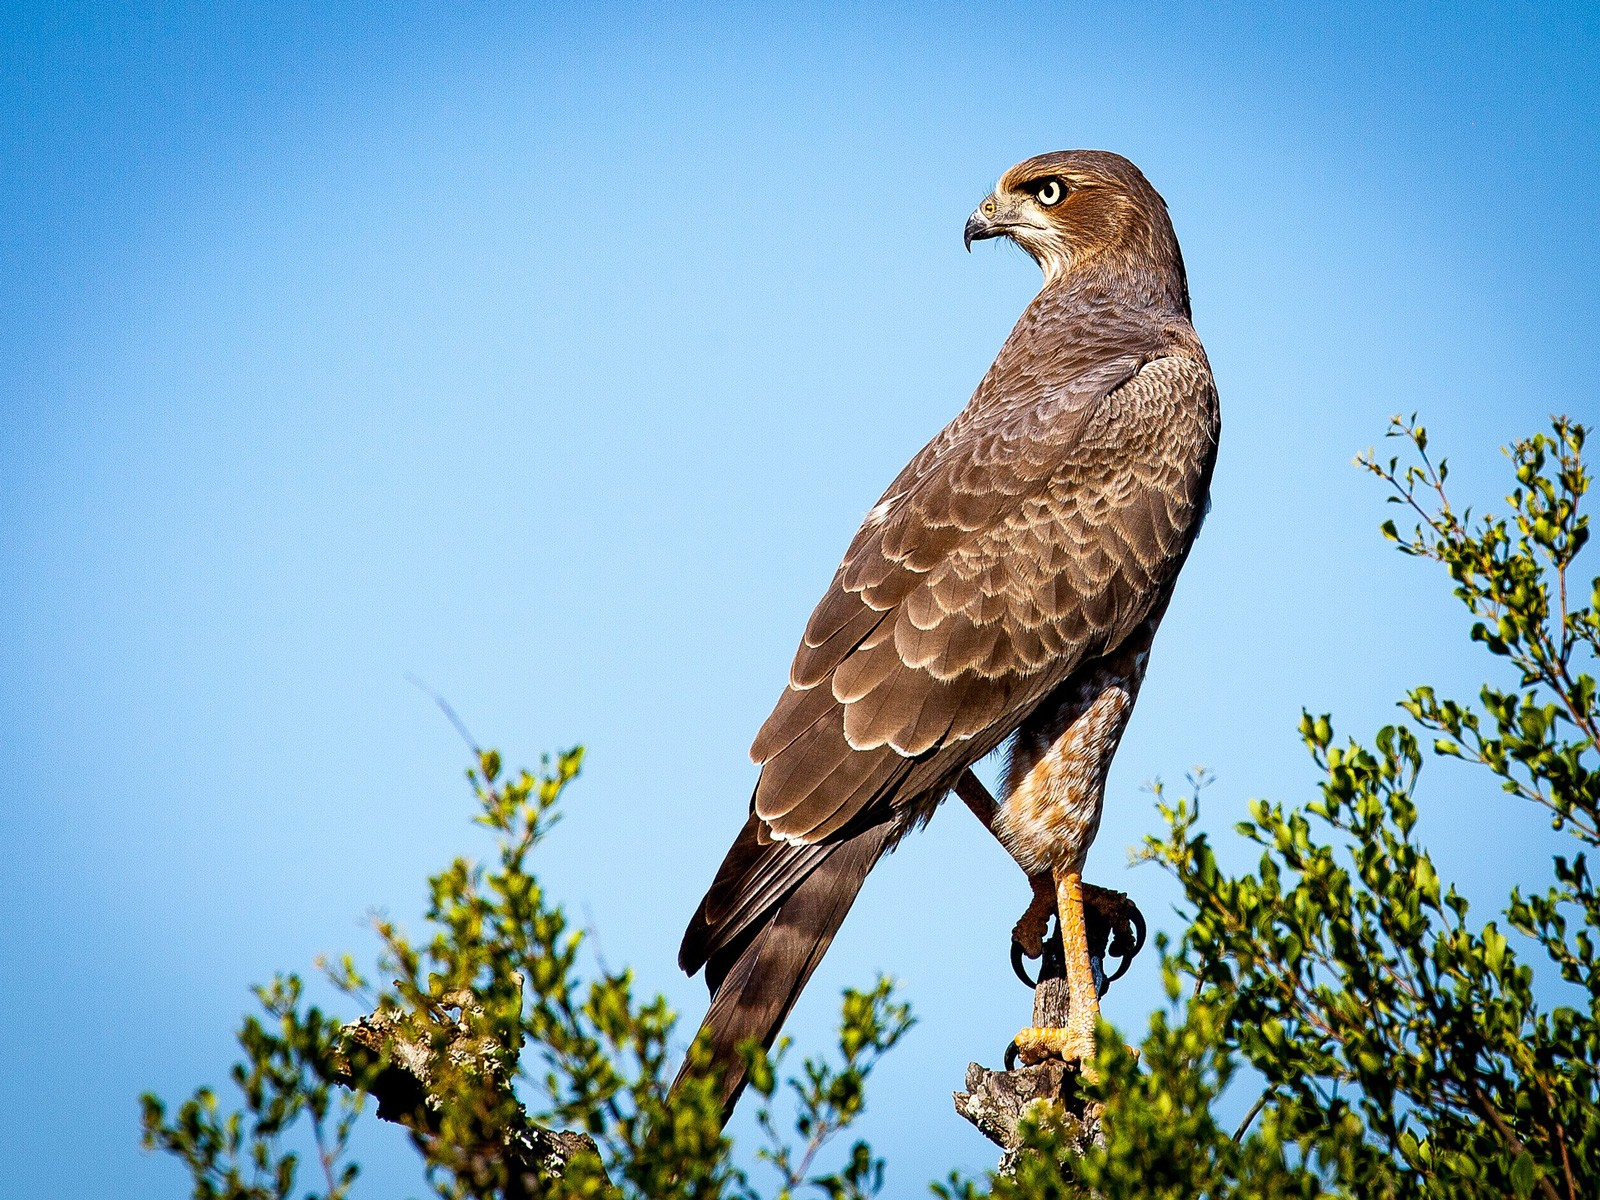 Falcons And Ravens Meaning Of Conflict On Whats Your Sign